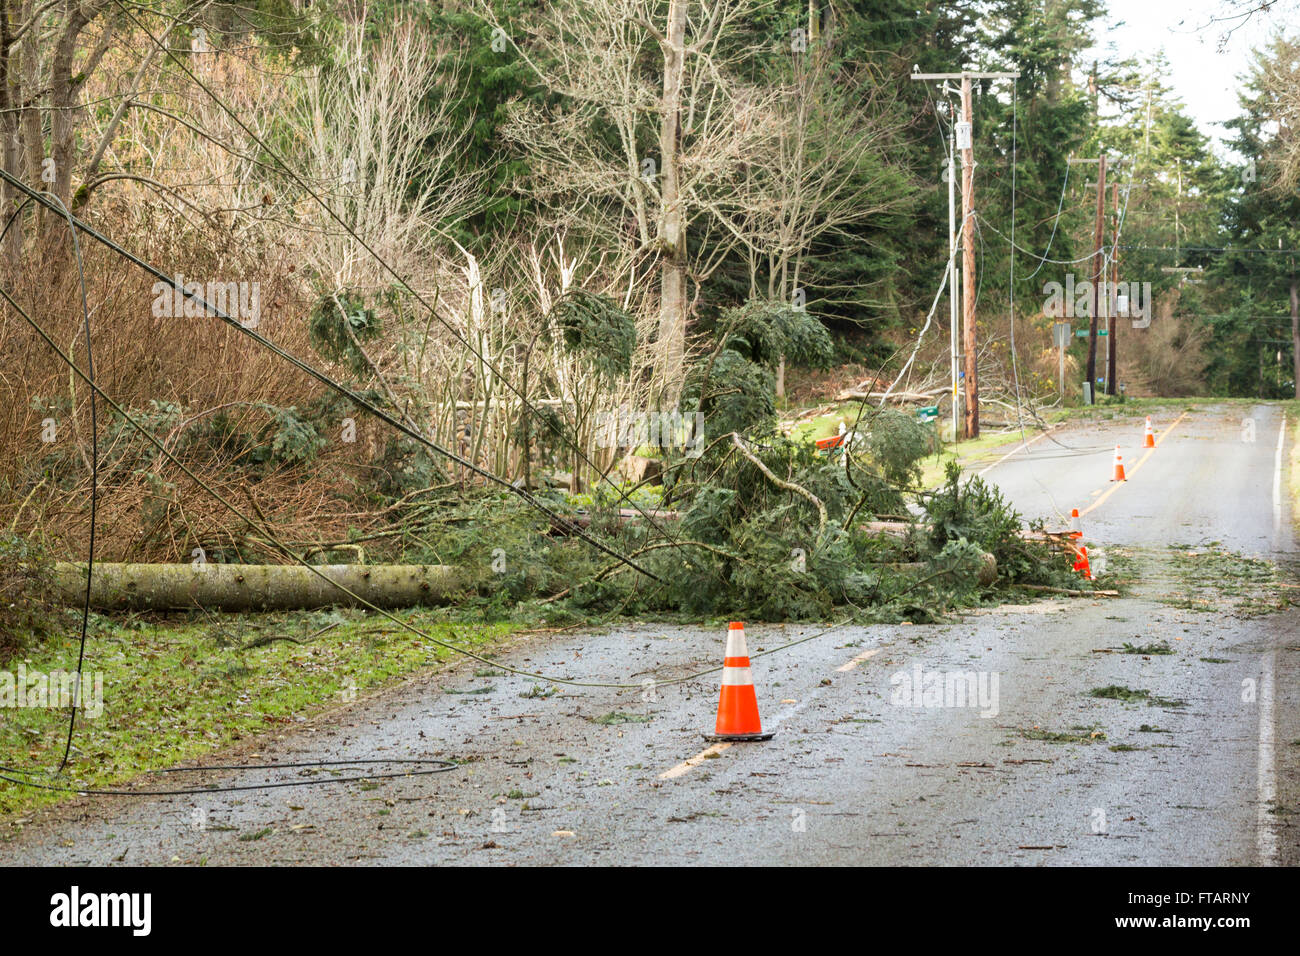 Fallen trees and downed electrical power lines blocking a road; hazards after a natural disaster wind storm - Stock Image